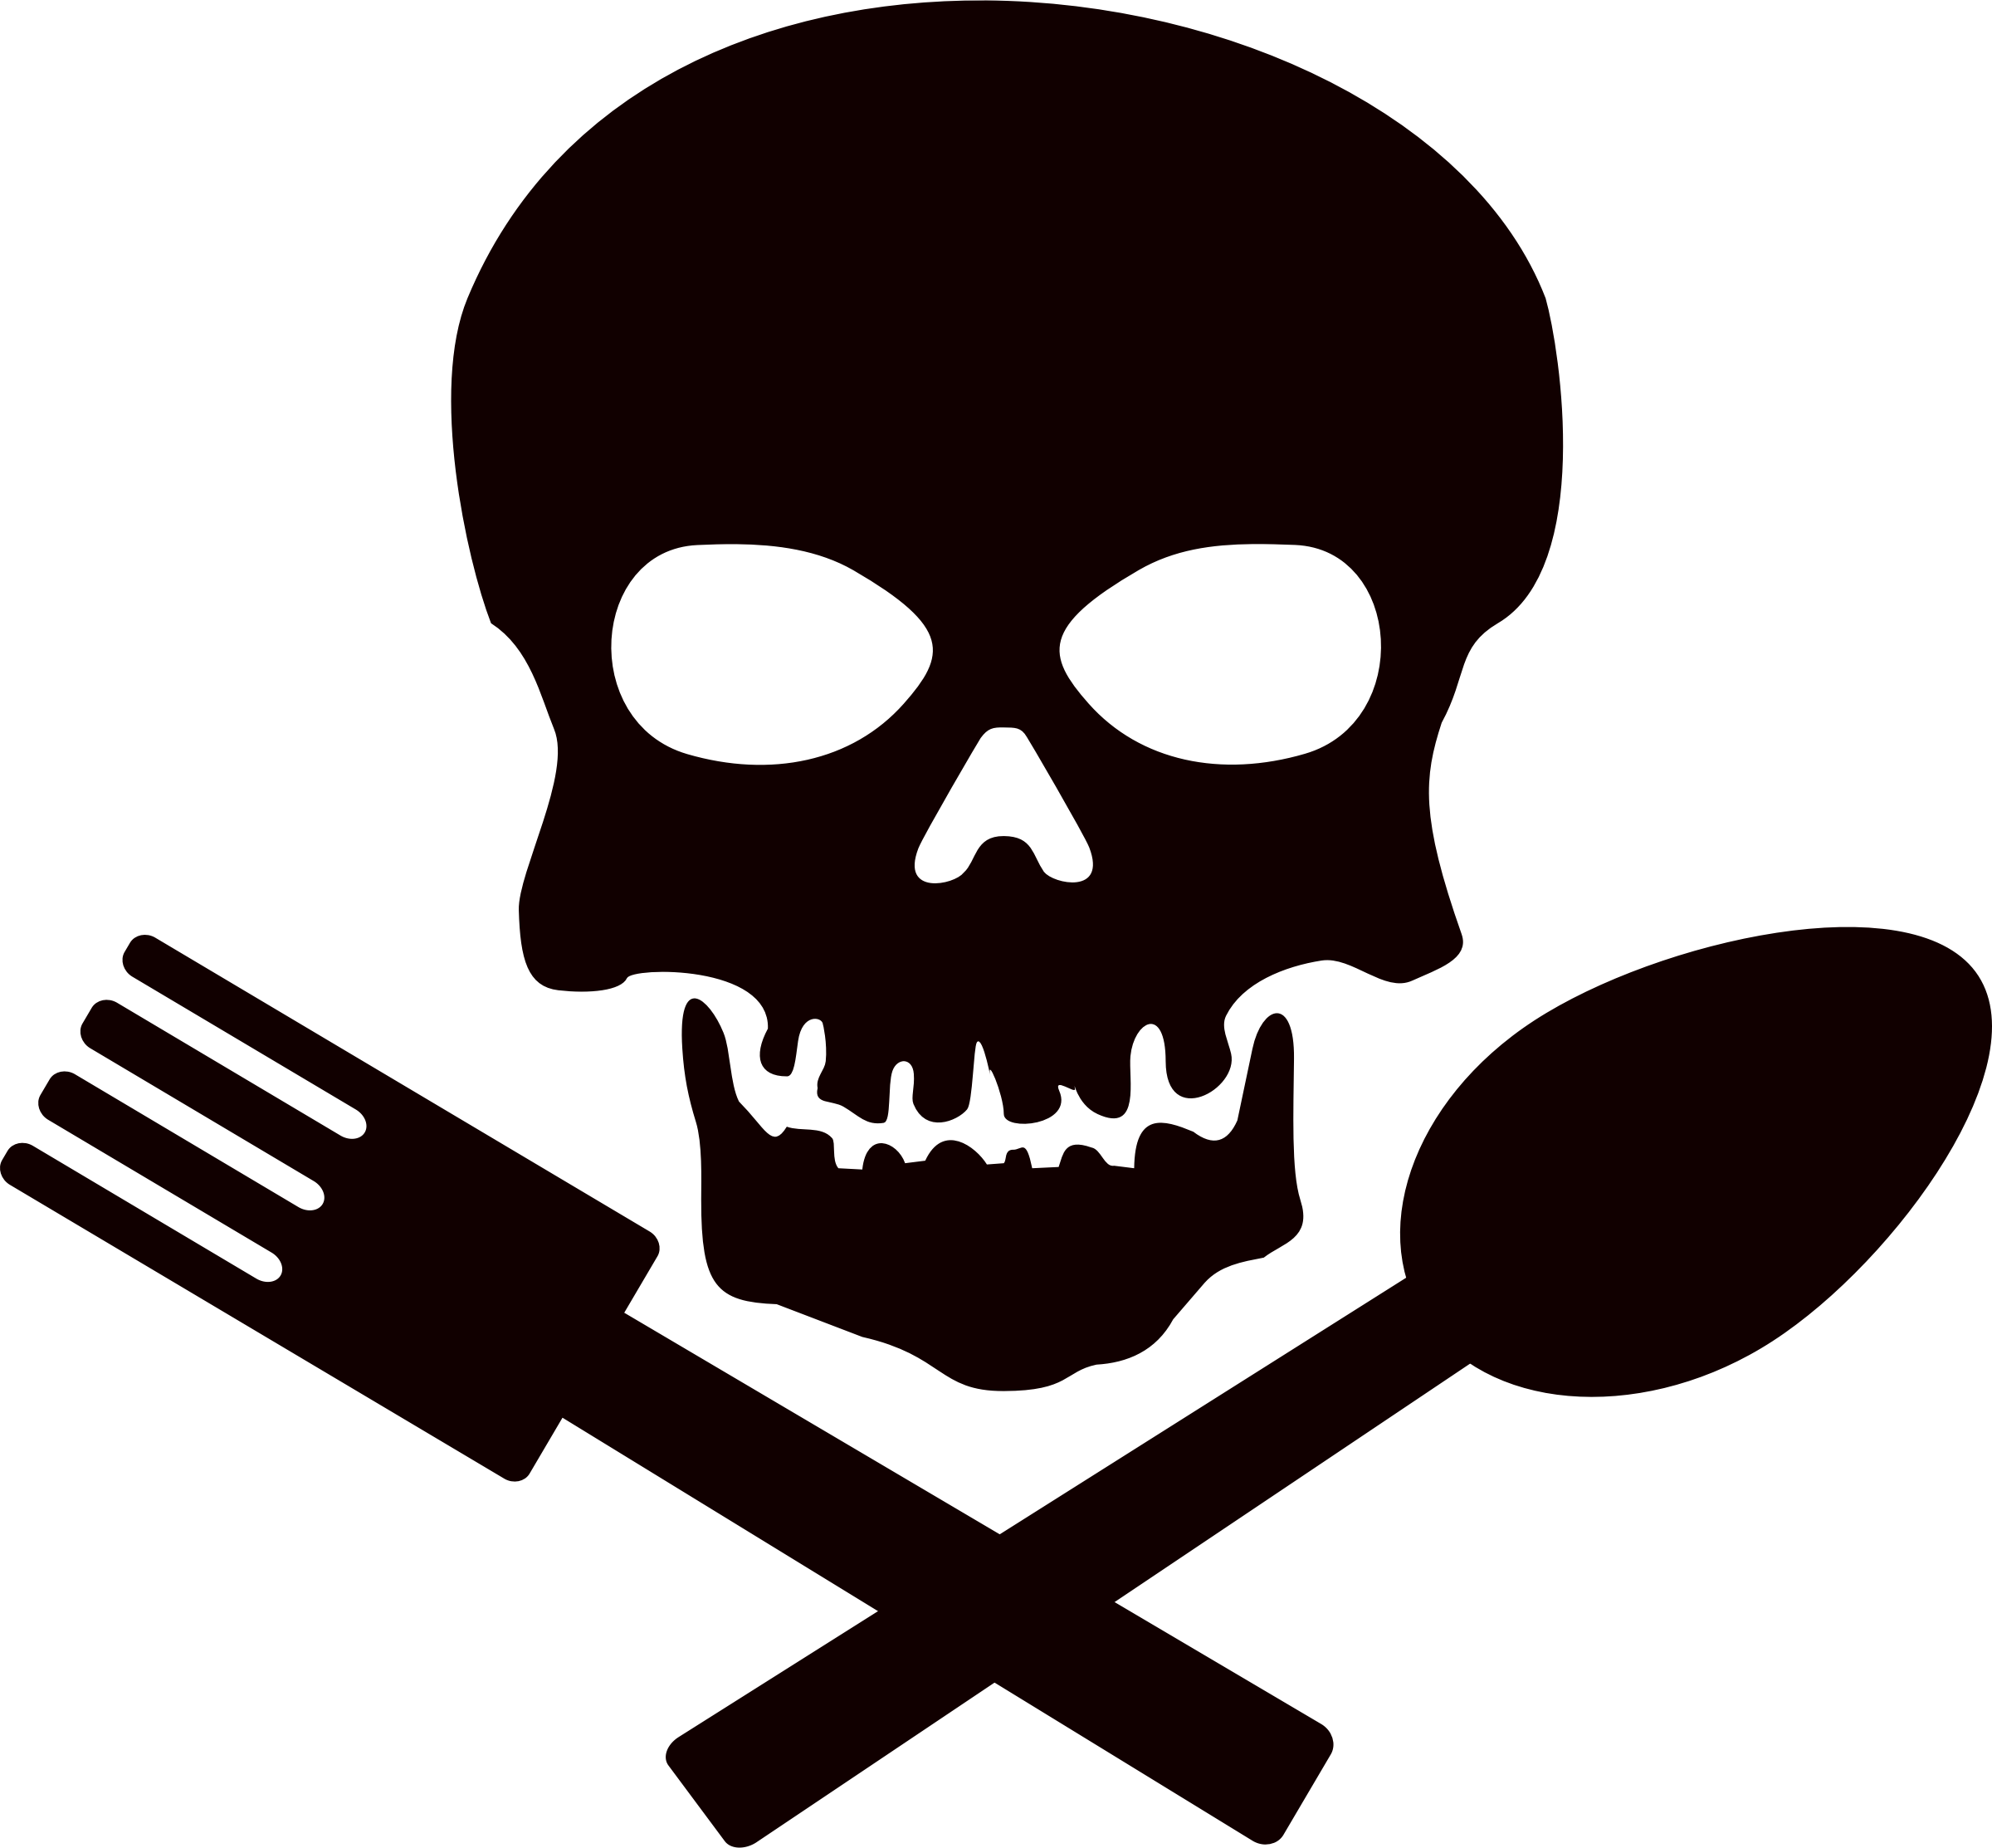 Pirate big image png. Pirates clipart cook